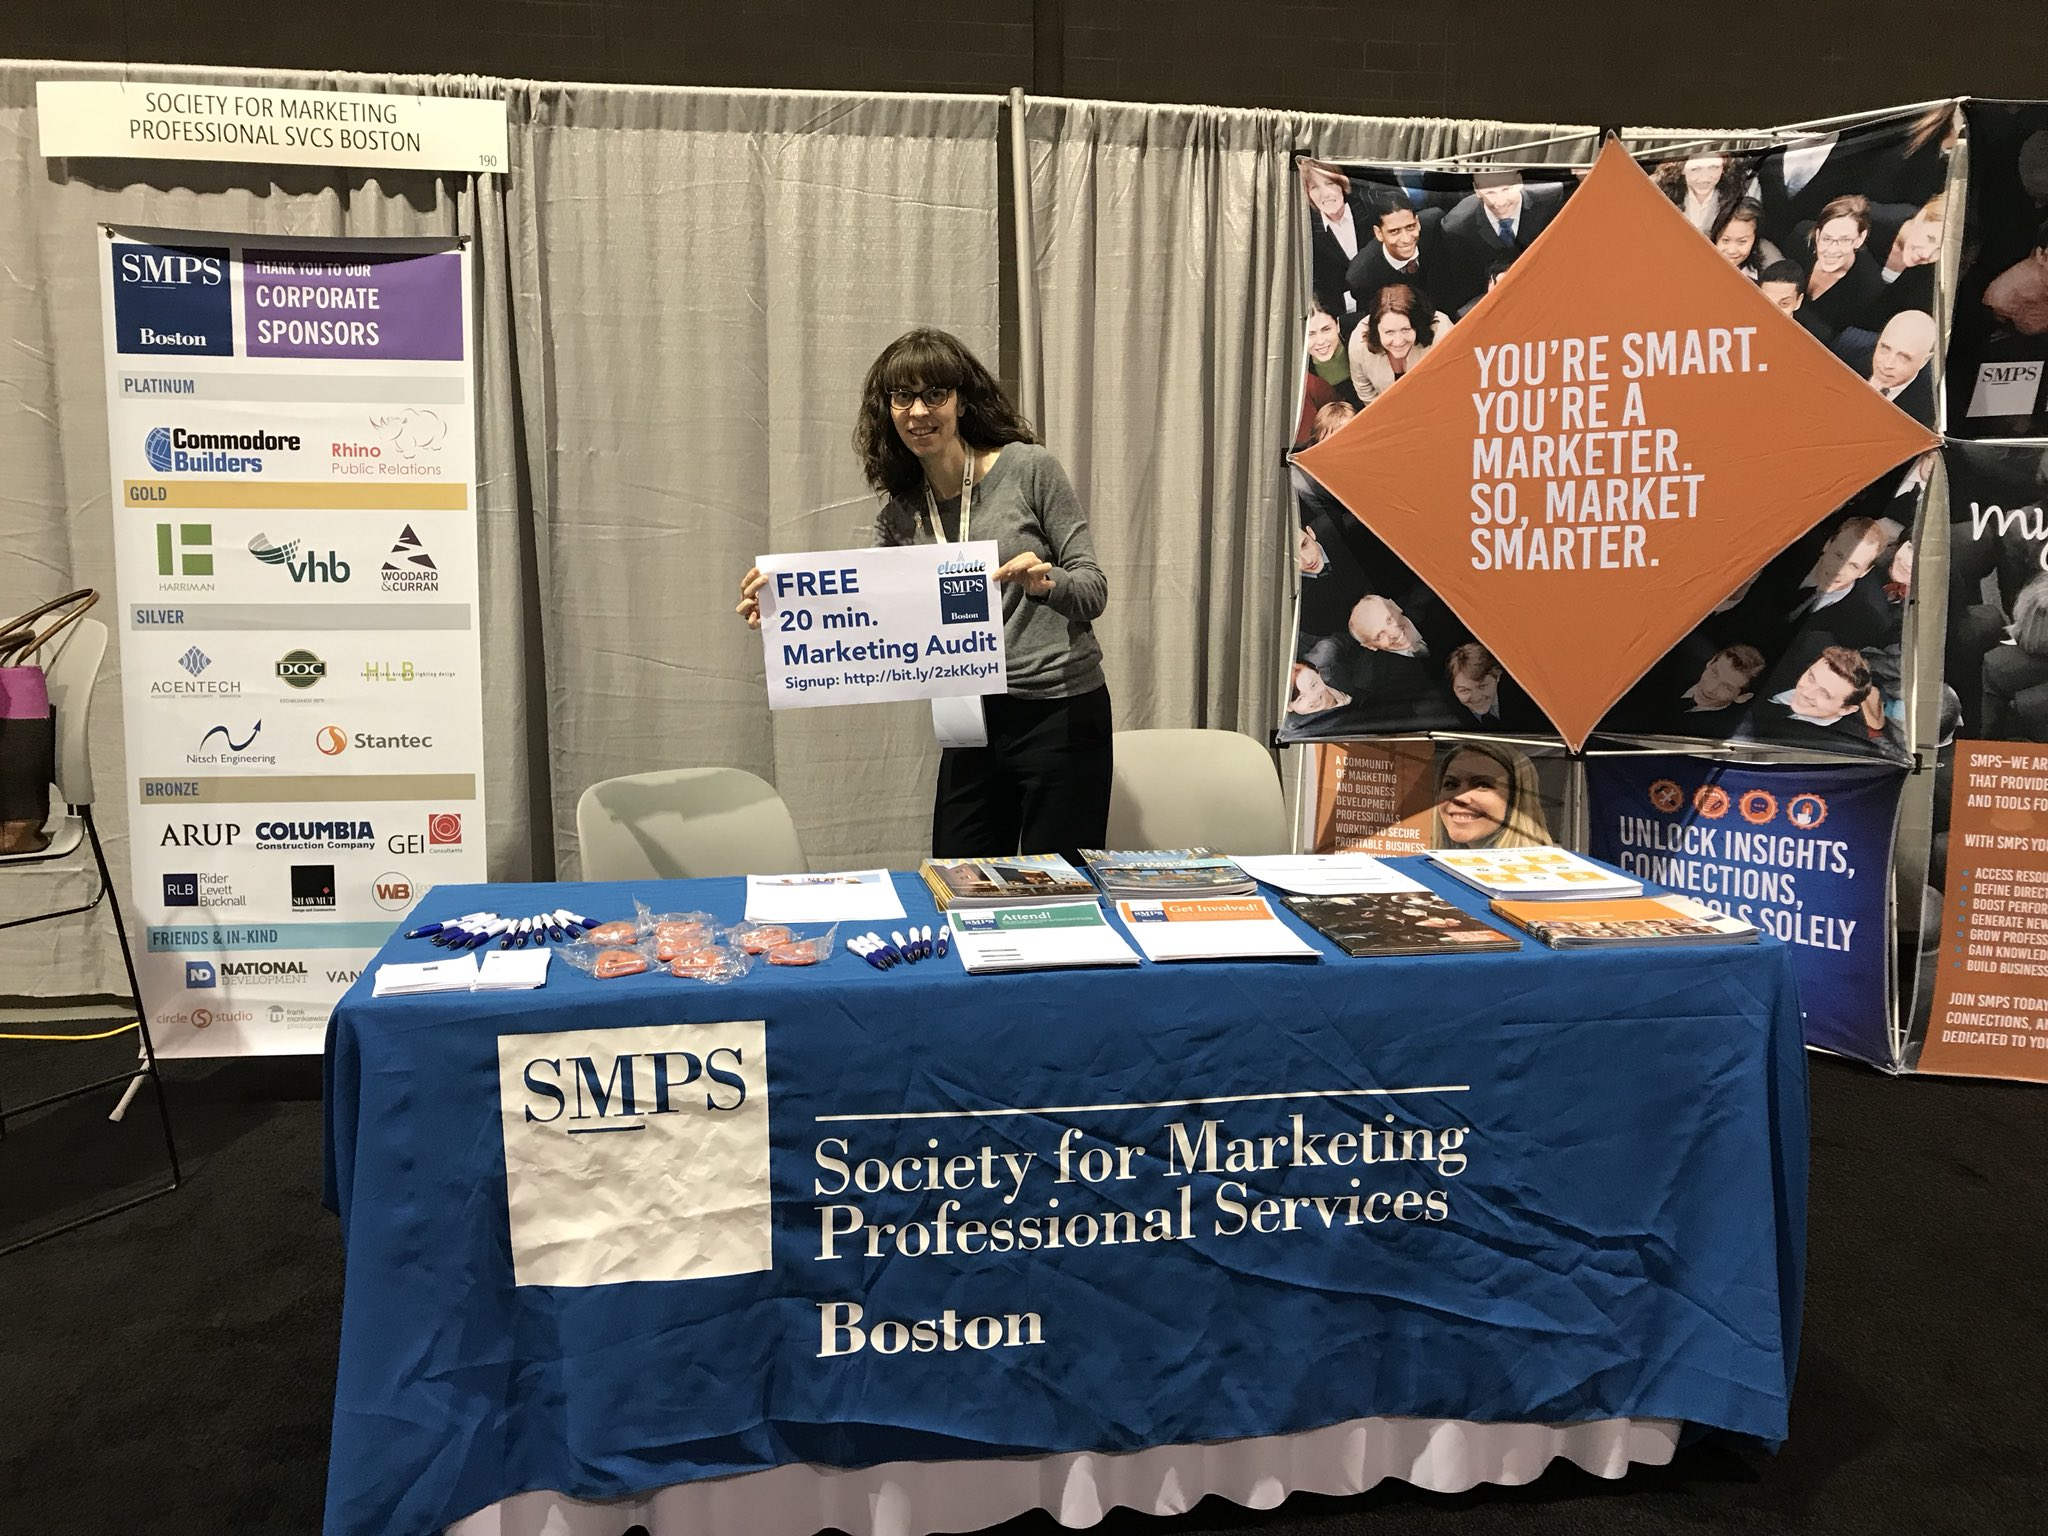 SMPS Boston on Twitter: